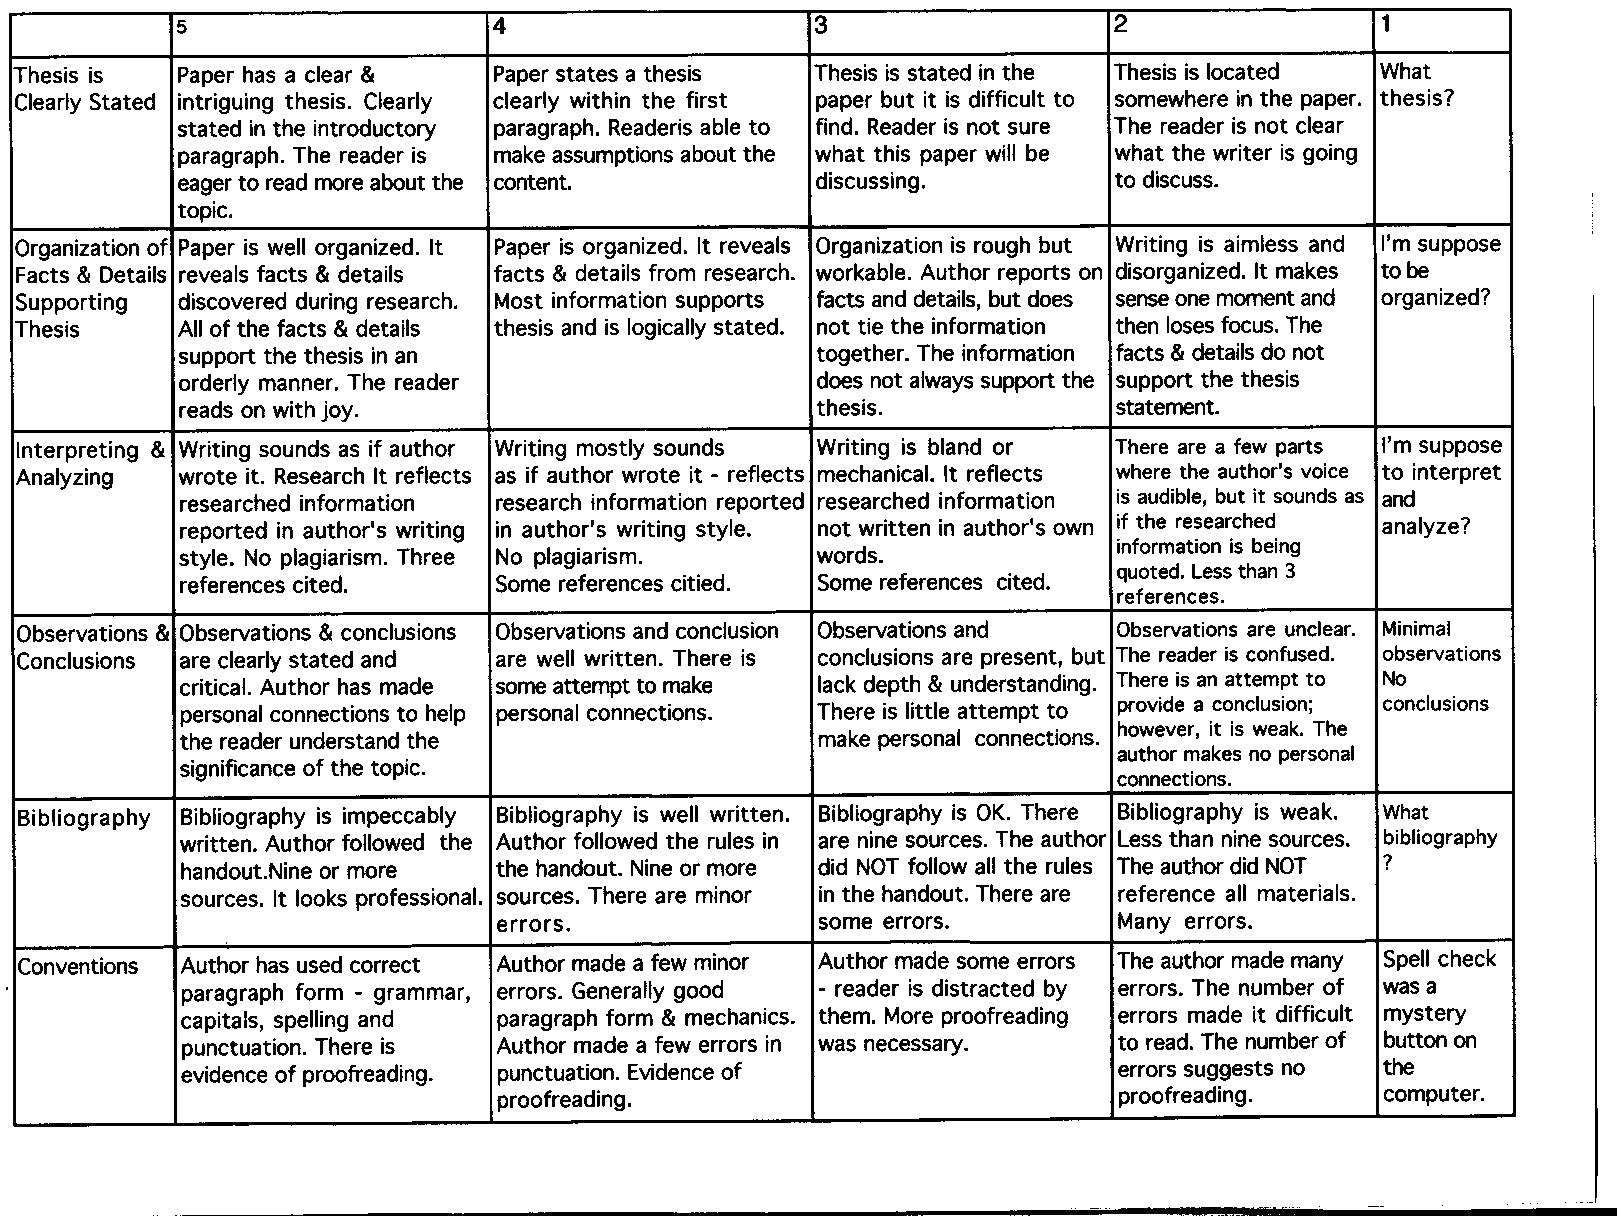 rubric for grading thesis statements Thesis statement rubric thesis statements can be 1-3 sentences long statement give yourself a grade for each category (4, 3, 2, or 1.